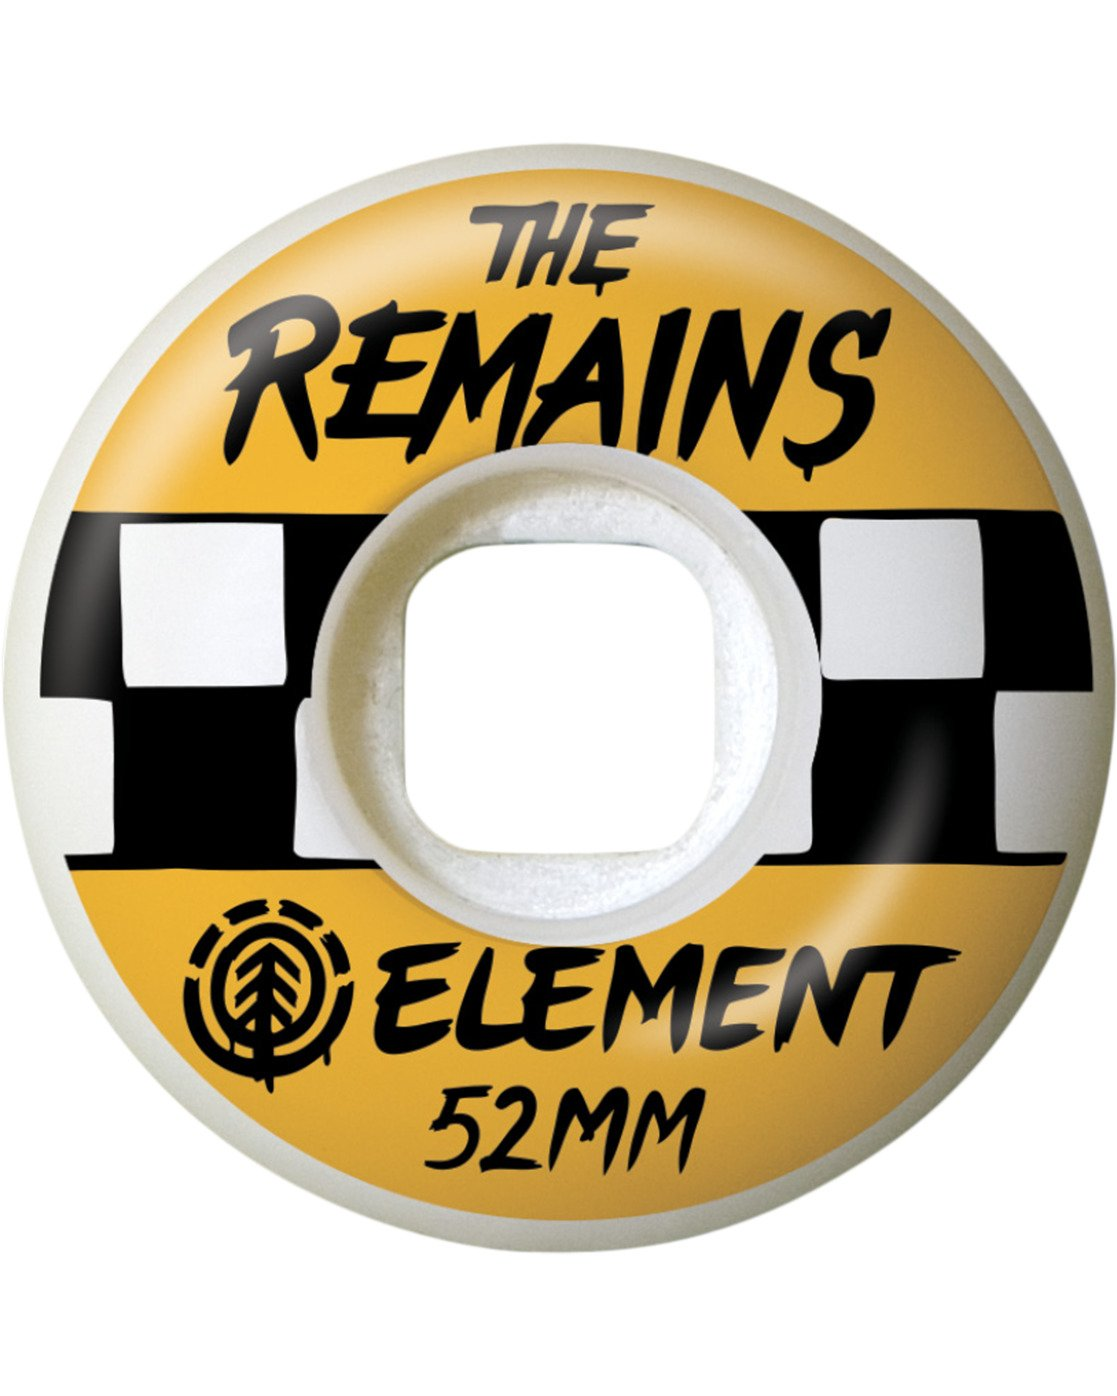 1 Timber Remains 52MM Wheels  WHLG3TRW Element